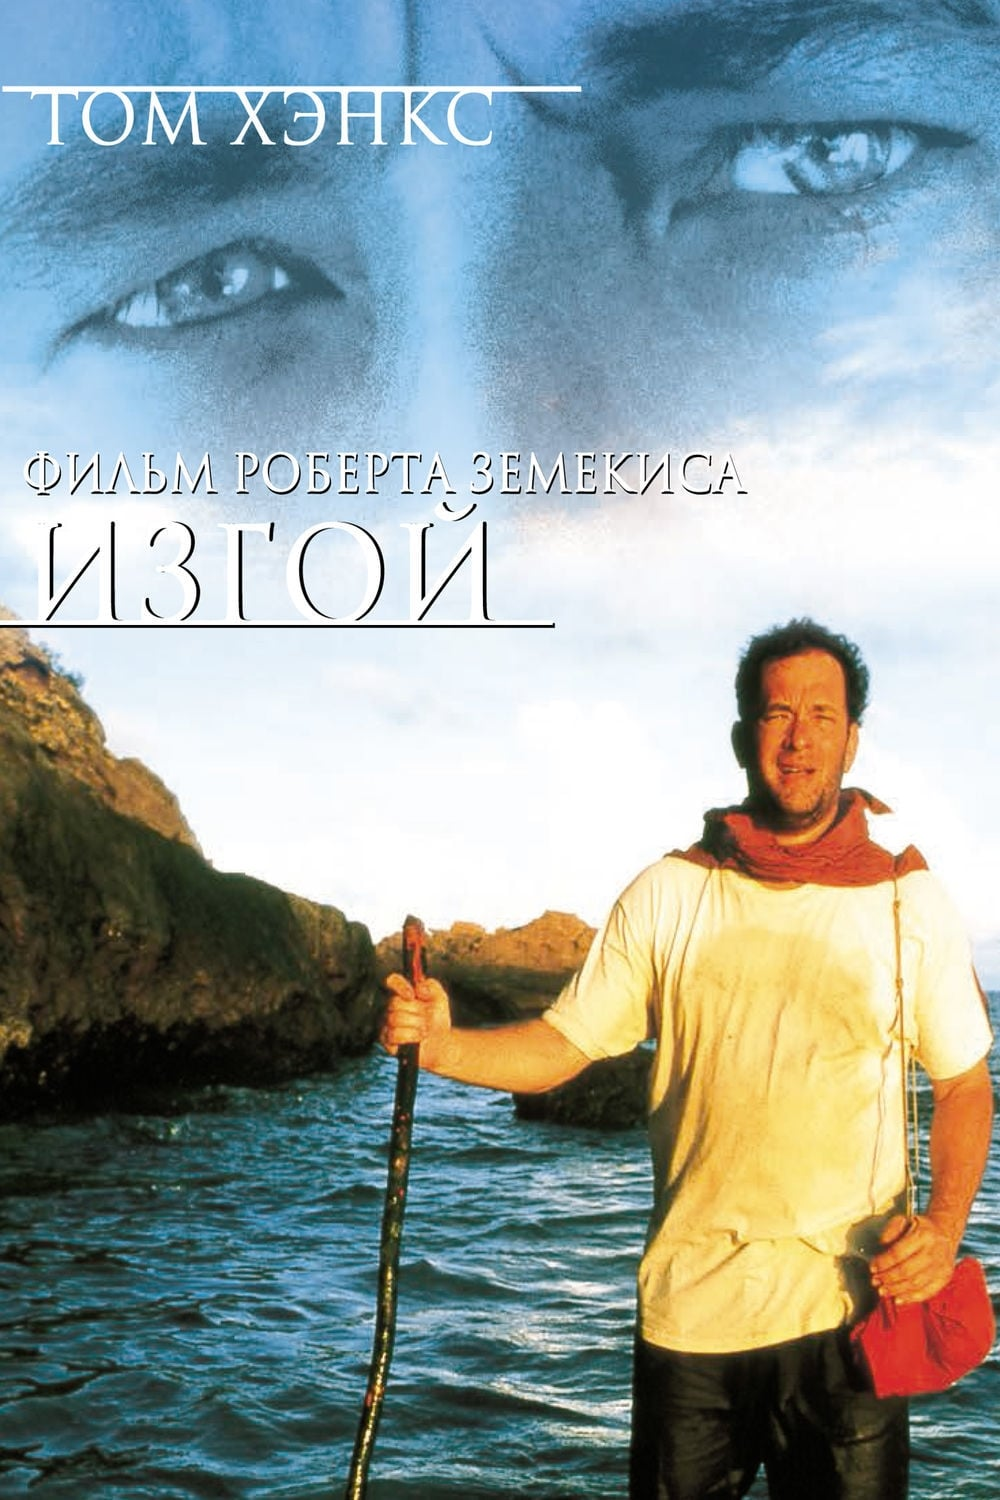 cast away streaming